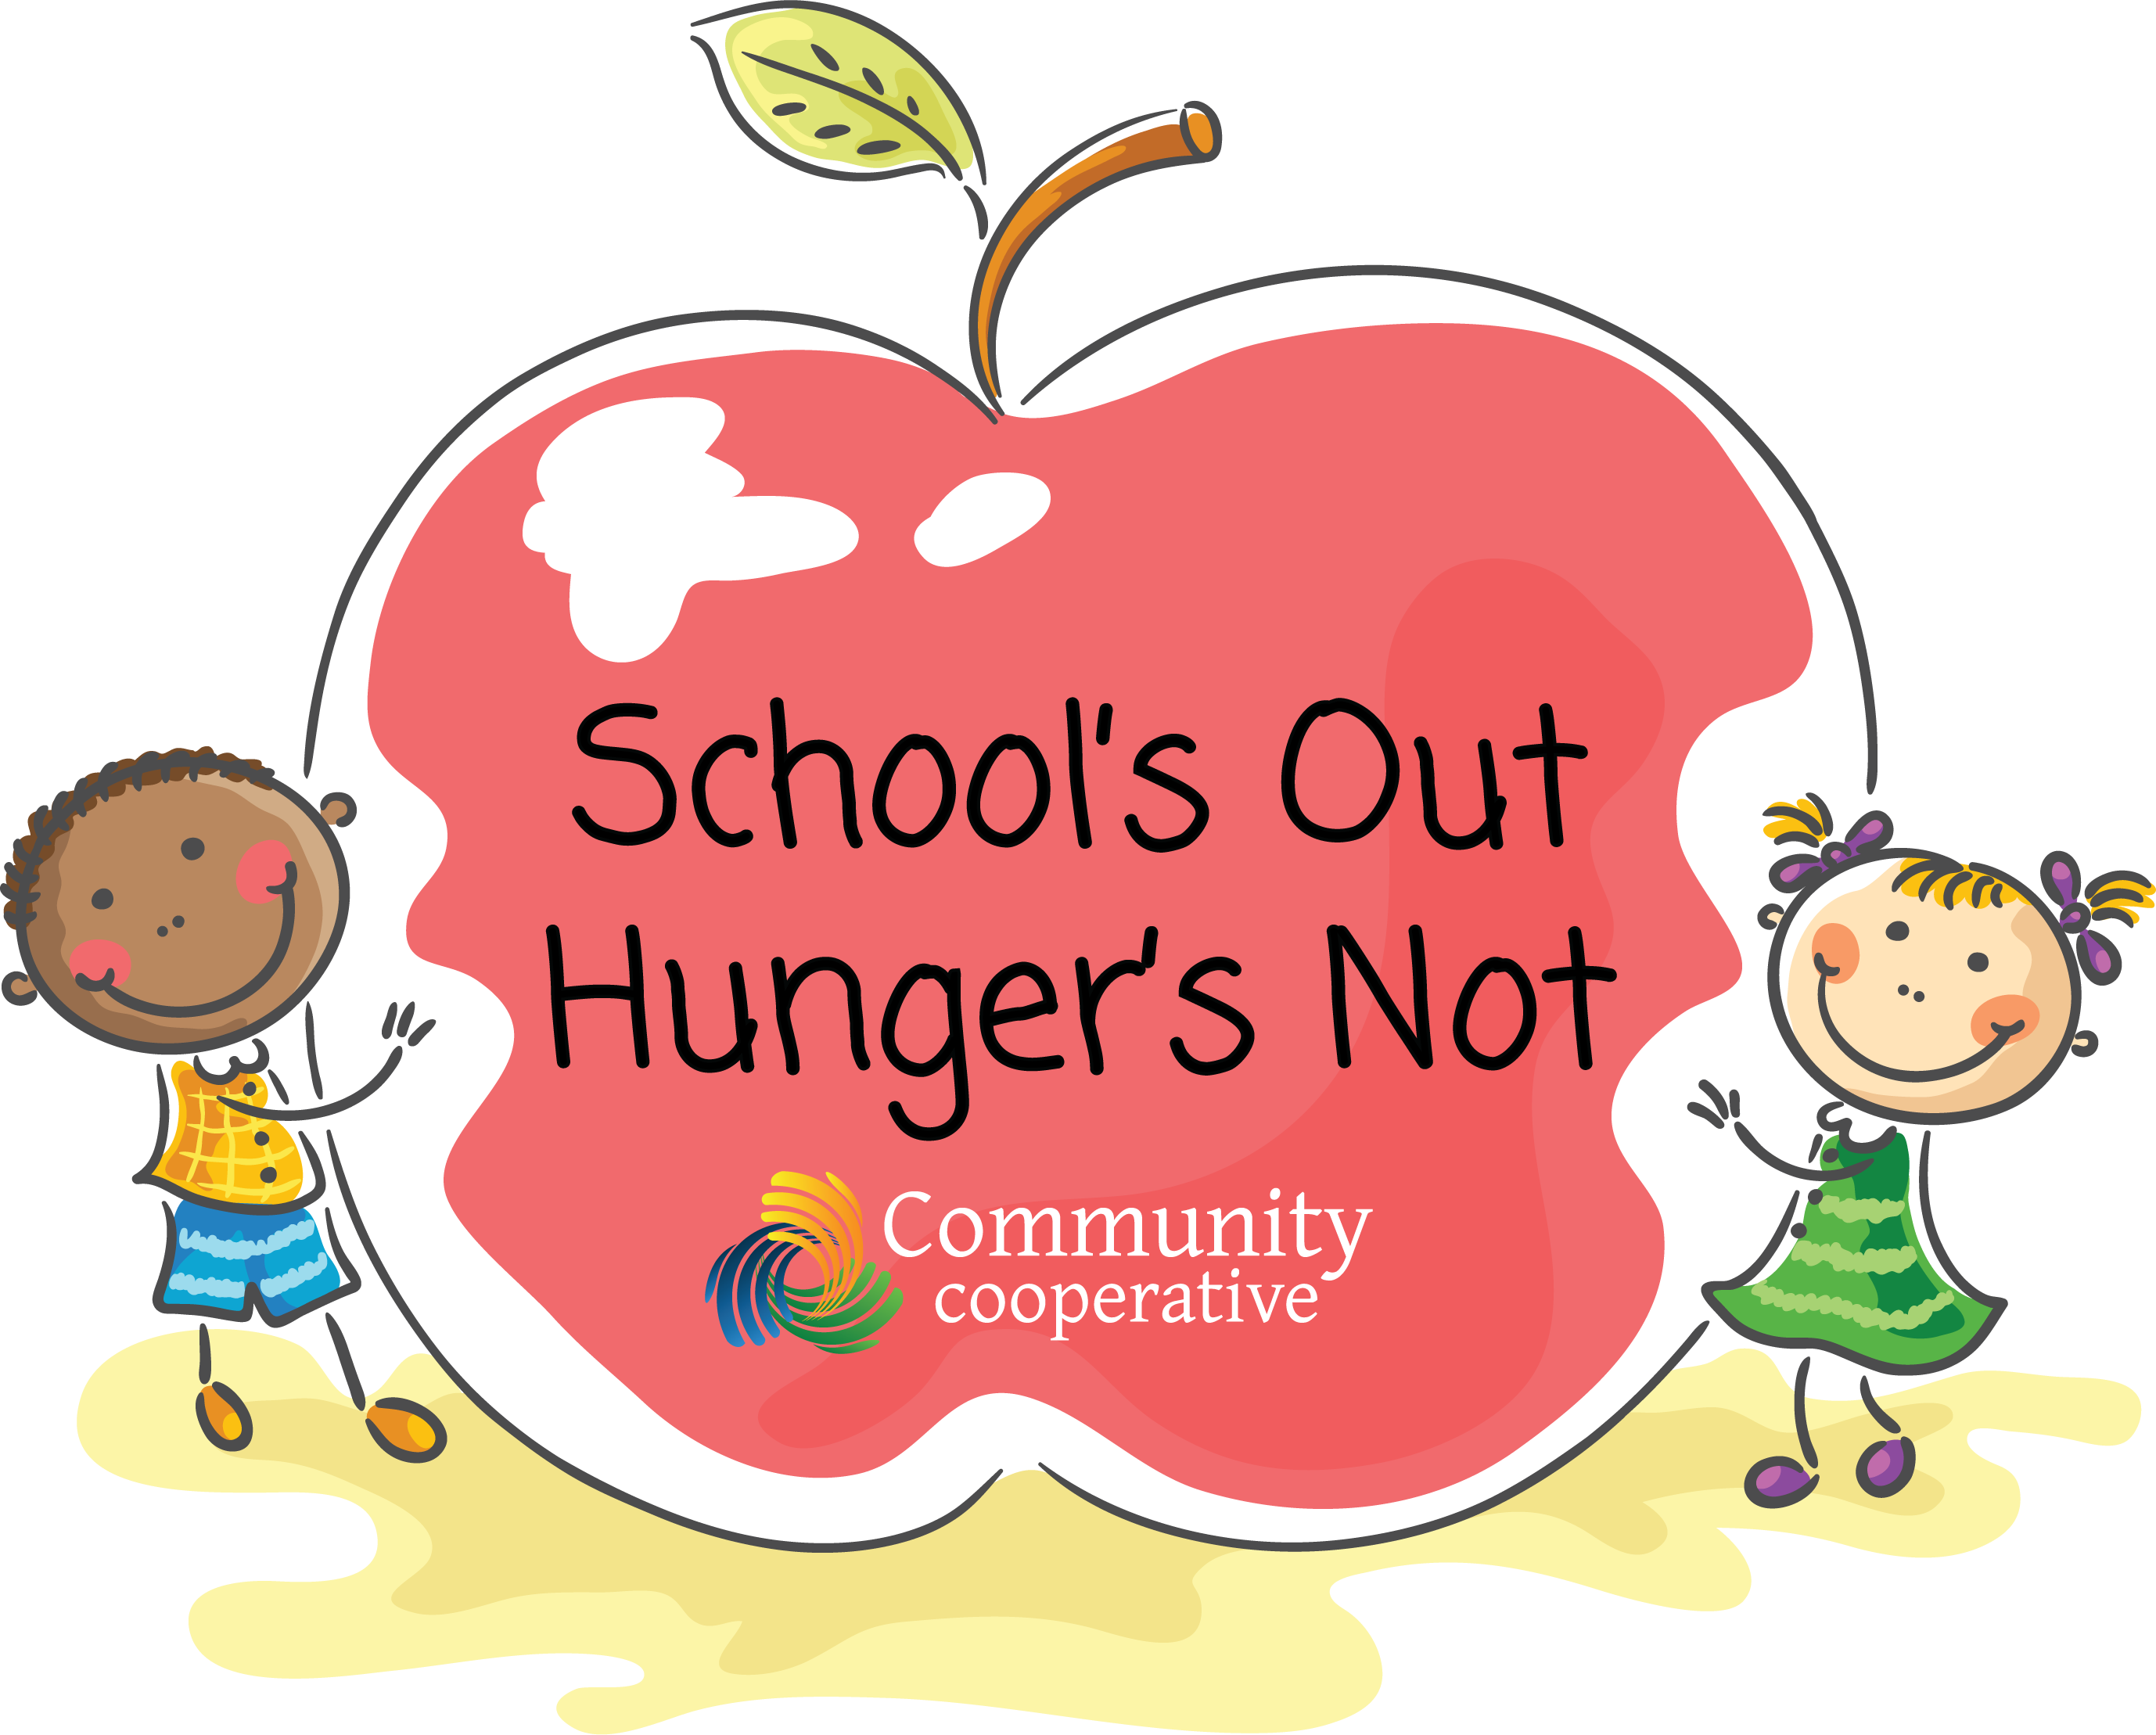 Community Cooperative - School's Out, Hunger's Not